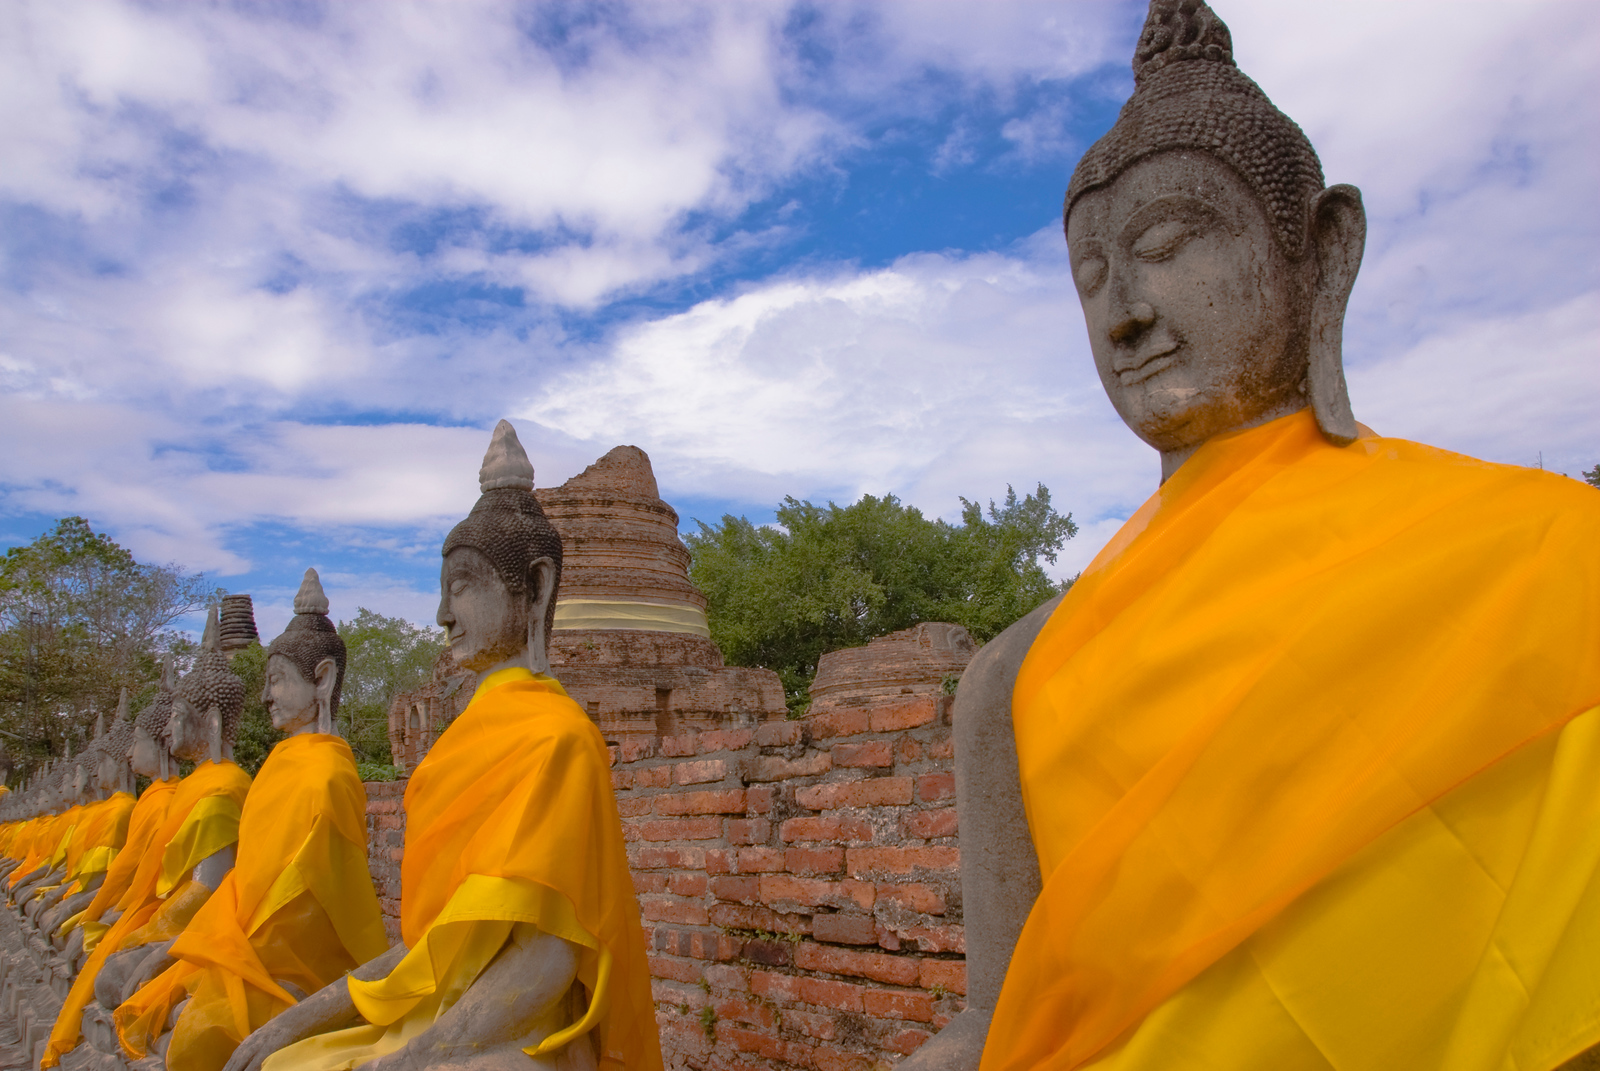 Historic City of Ayutthaya - UNESCO World Heritage Site